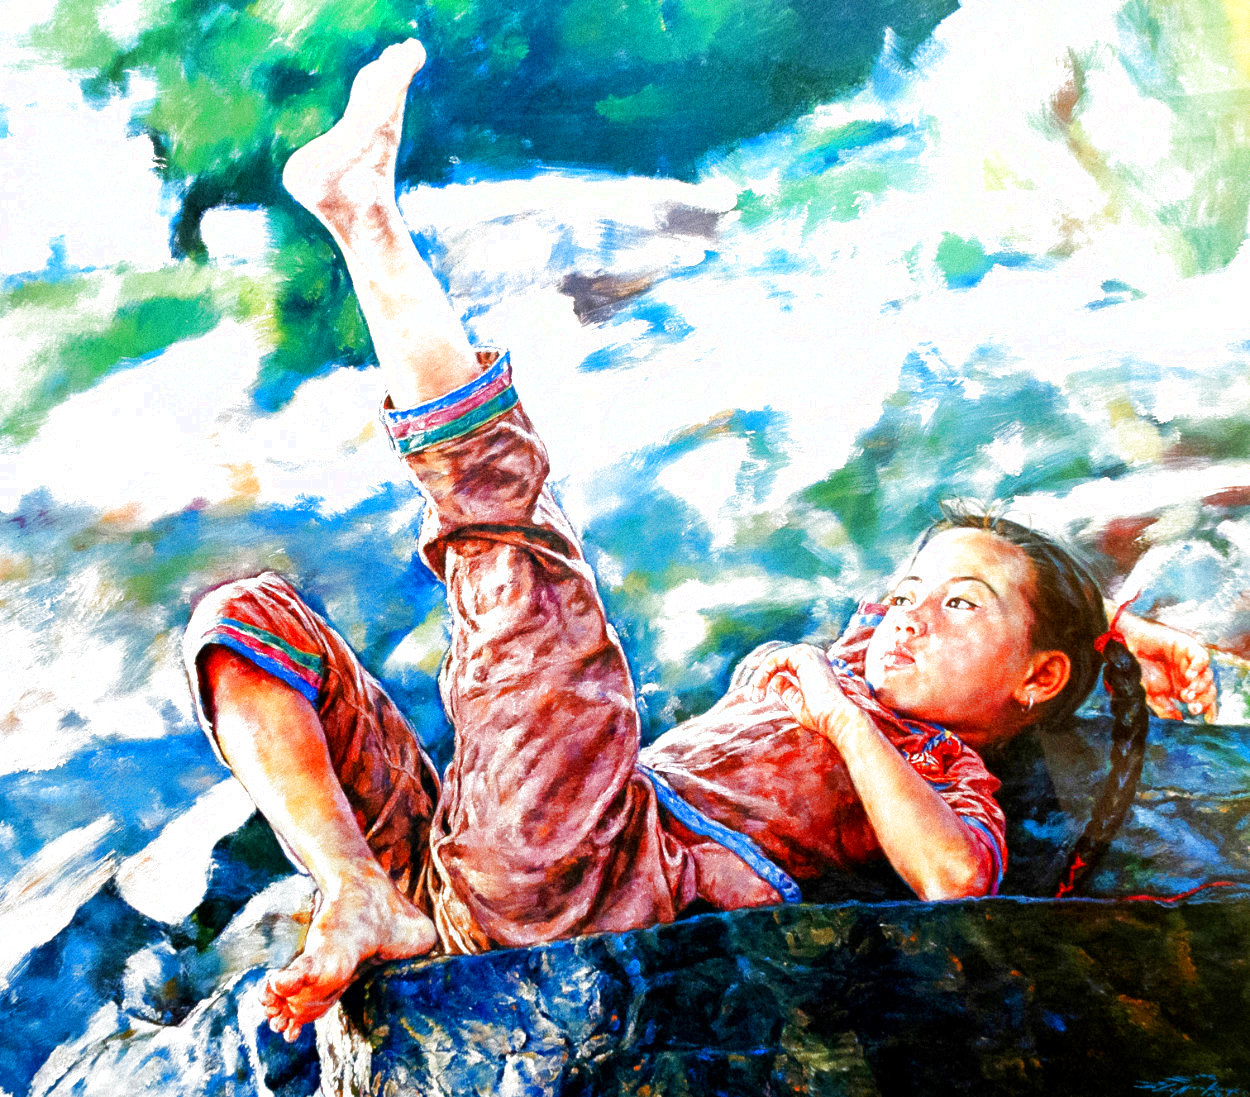 My Toes 1981 Limited Edition Print by Wai Ming